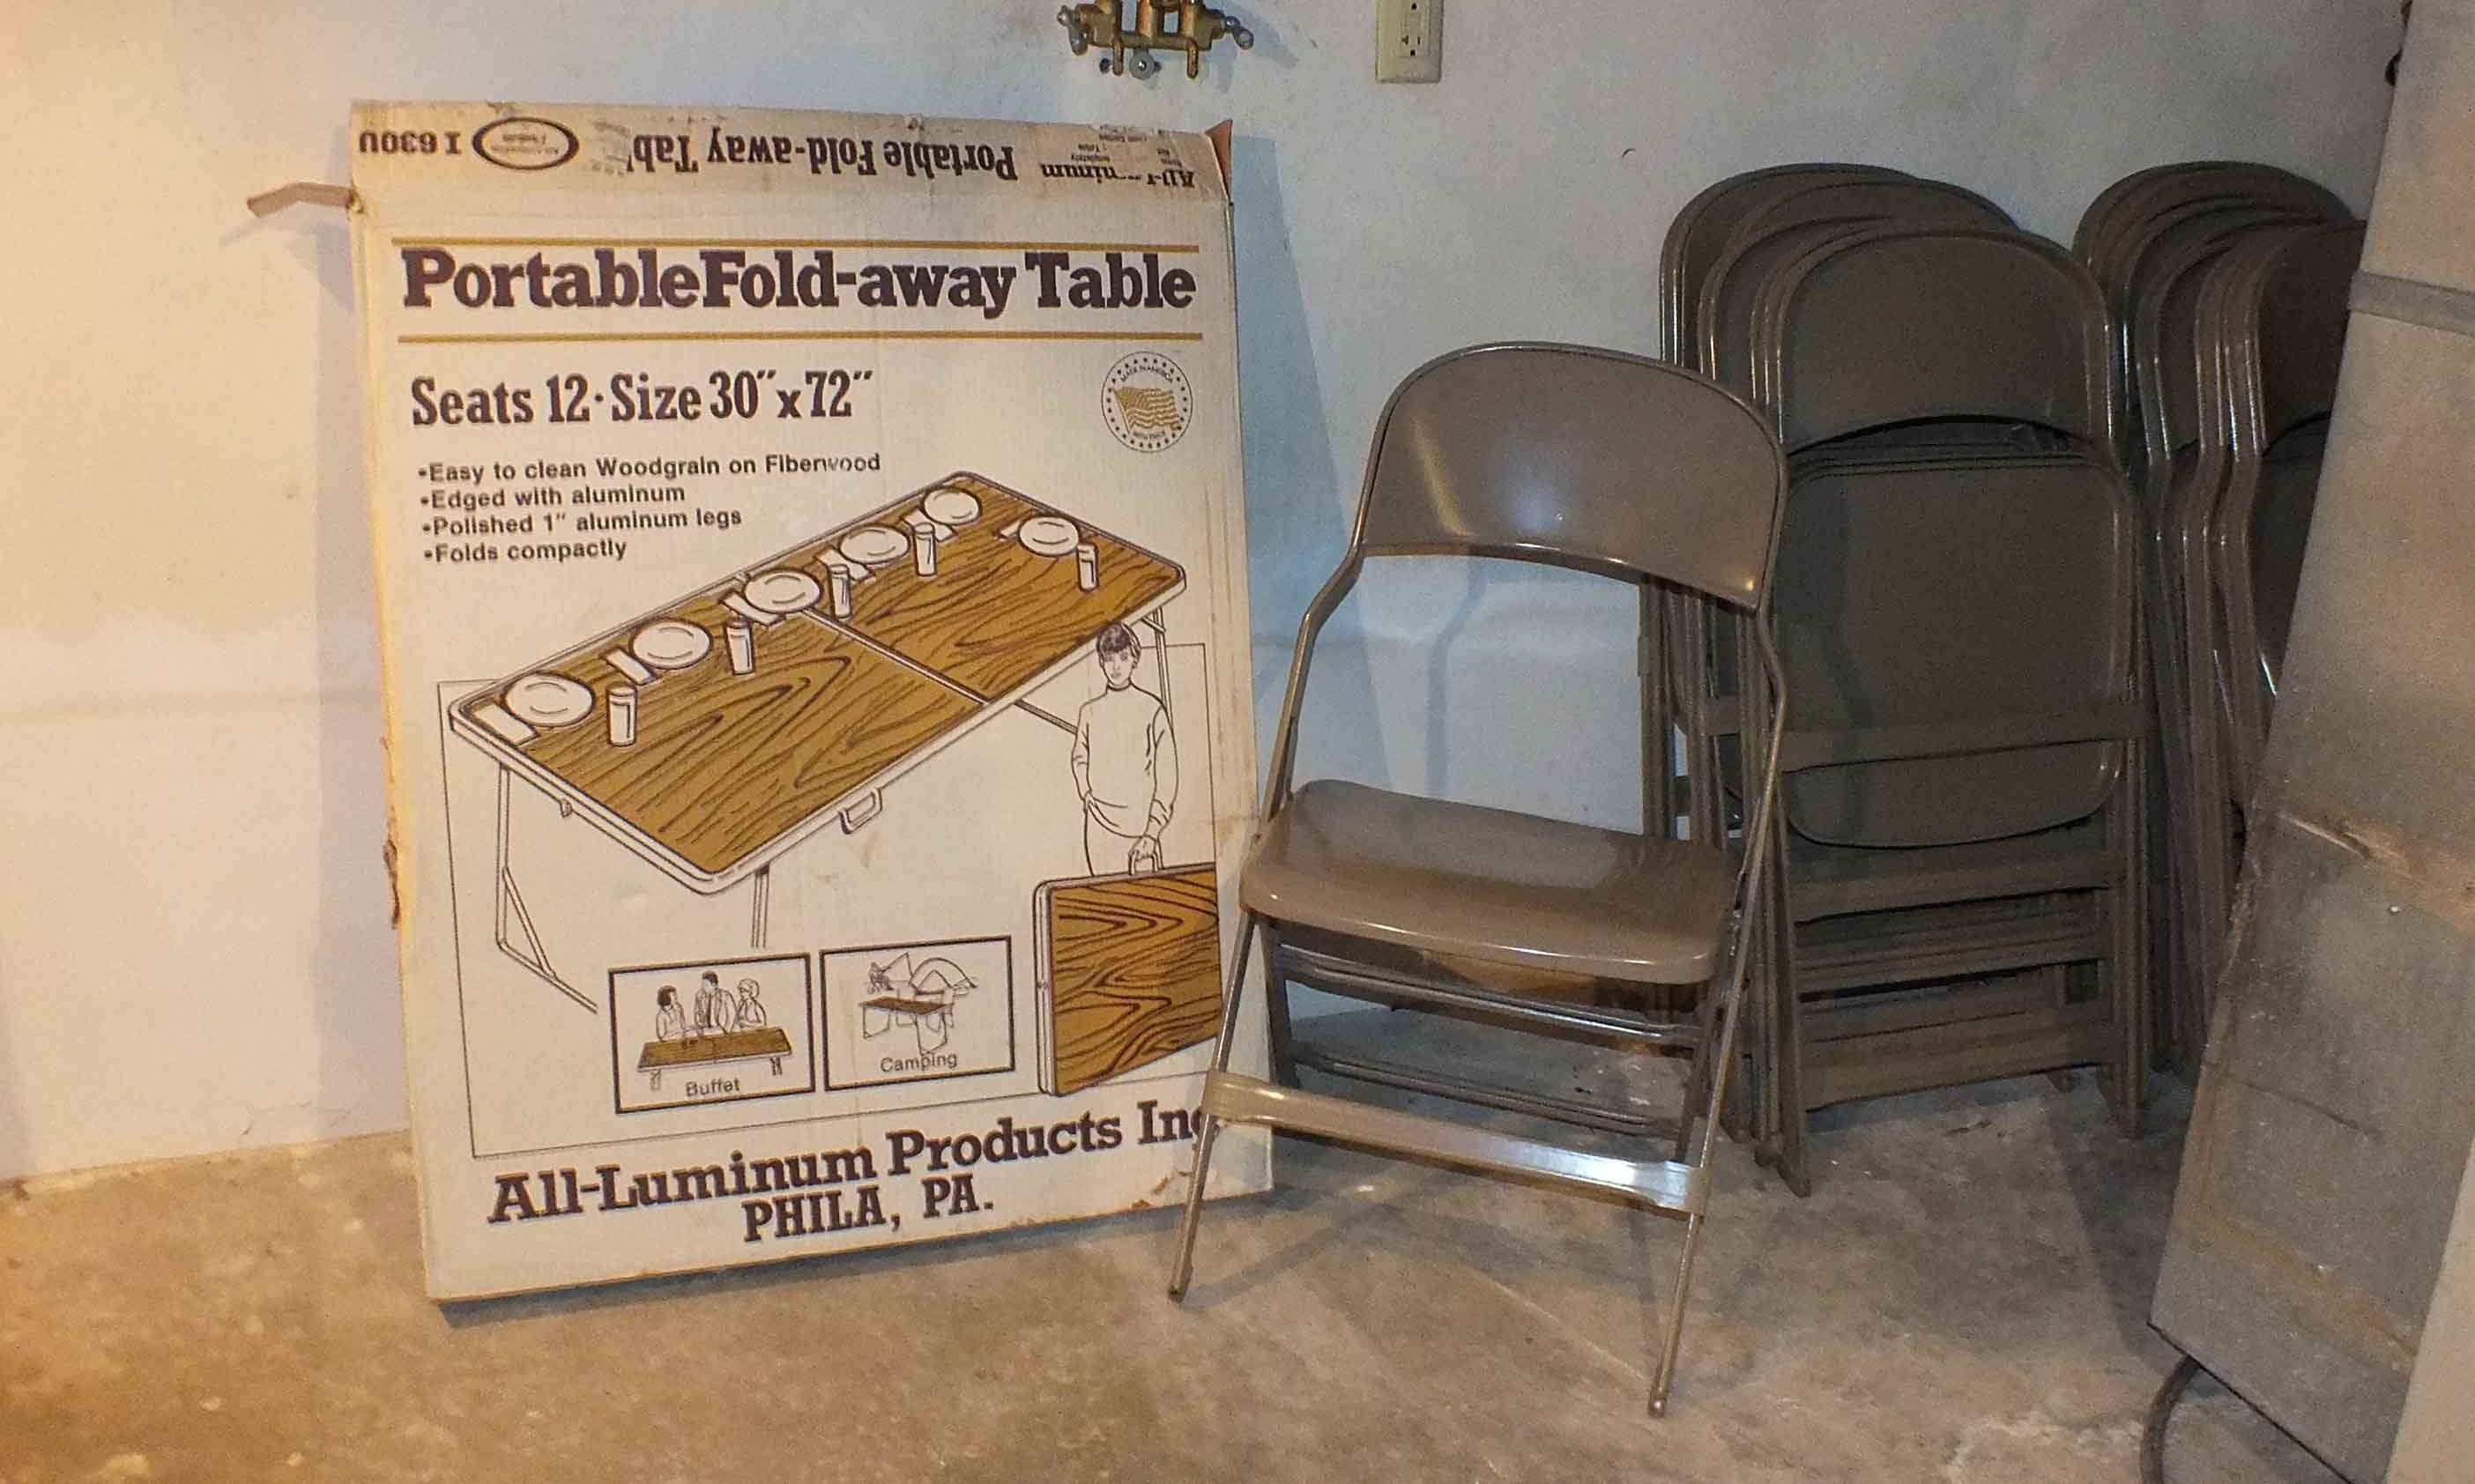 Fresh Foldaway Table and Chairs